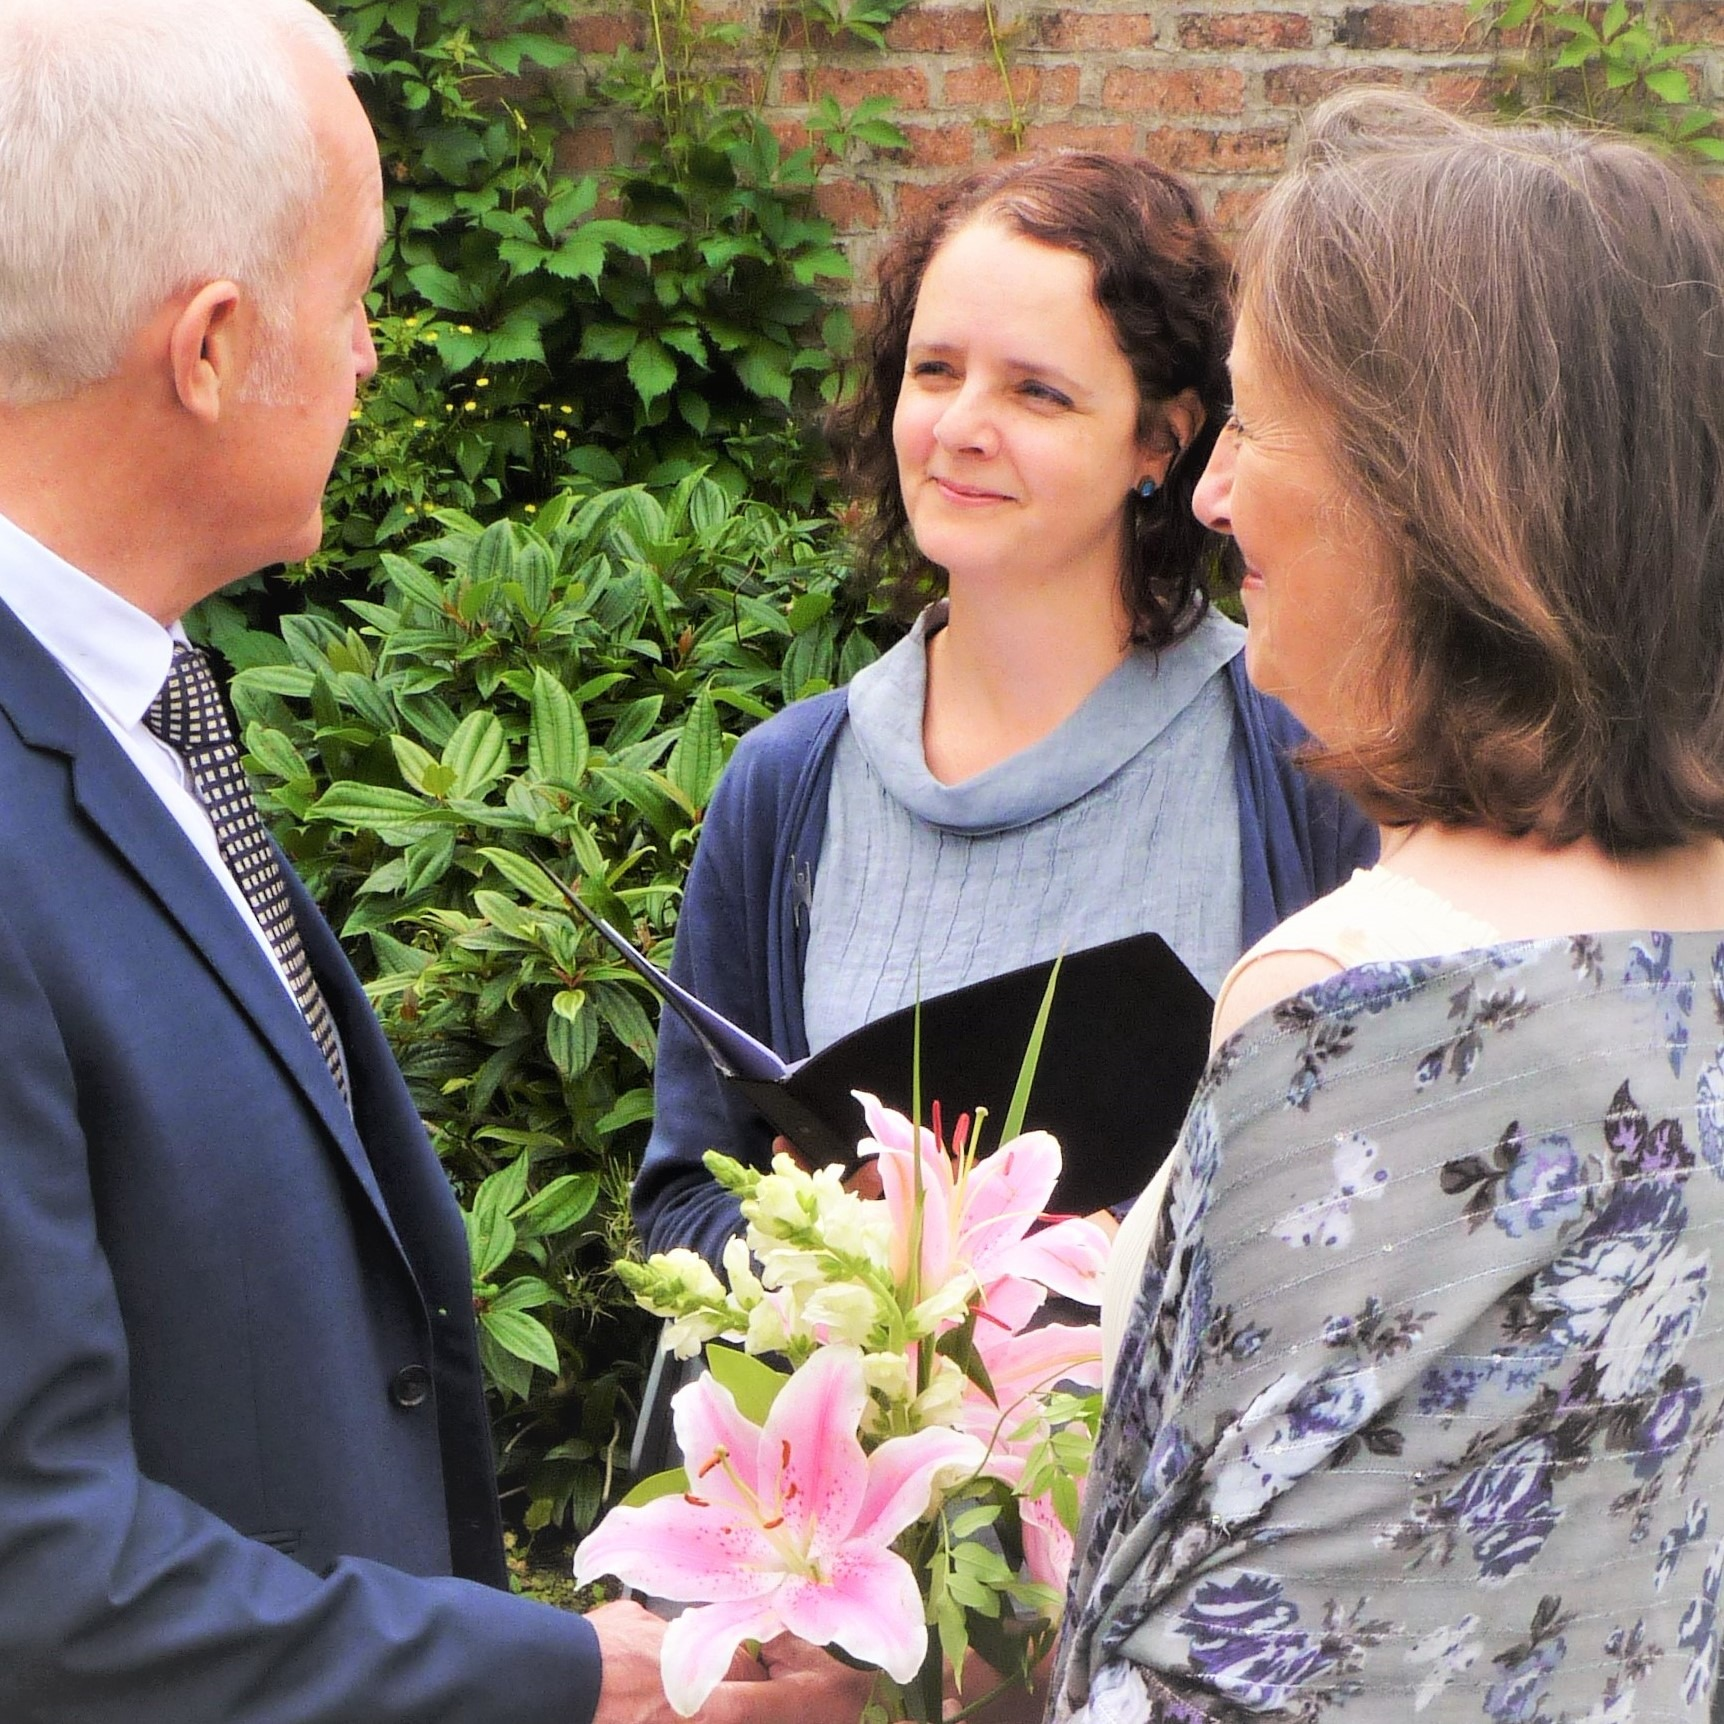 humanist wedding celebrant conduction a ceremony